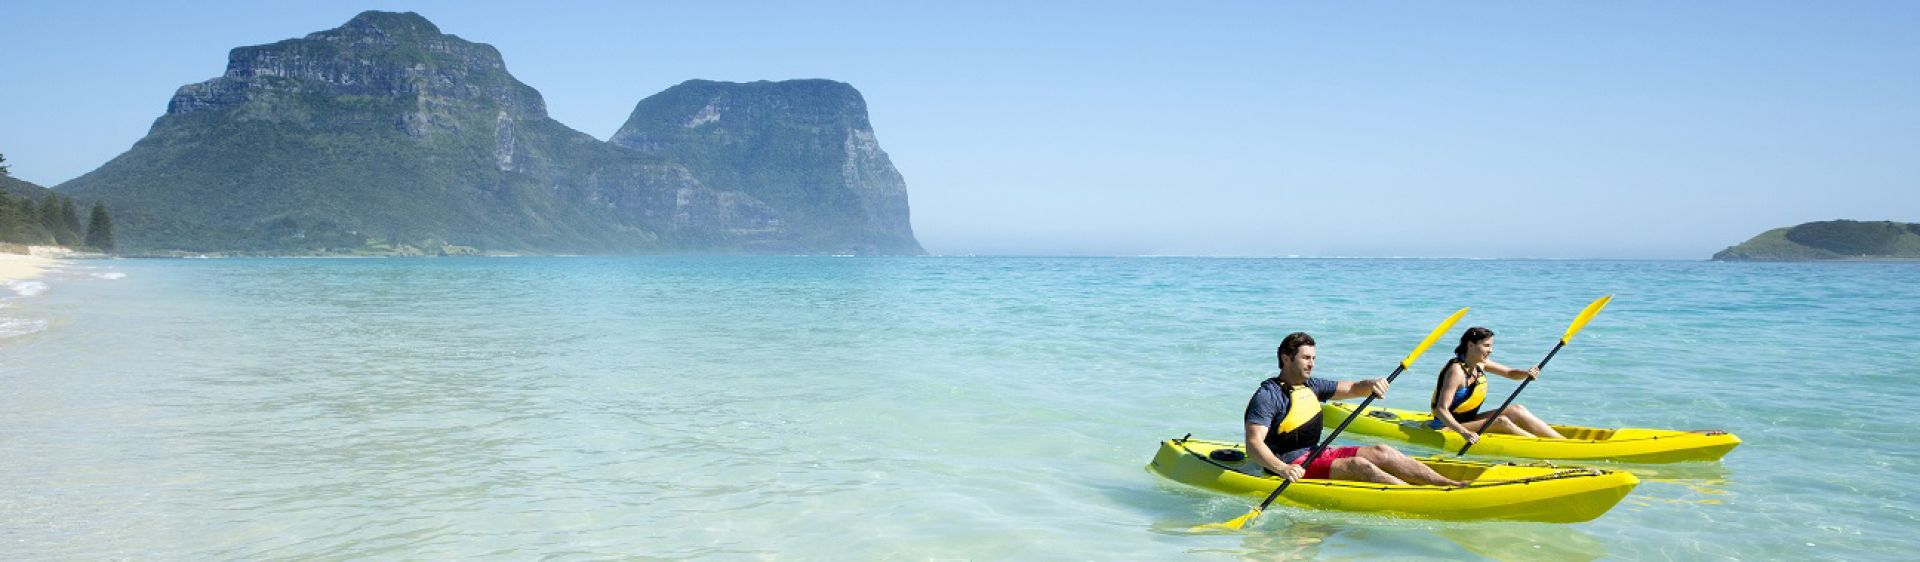 Lord Howe Island Nsw Australia Things To Do